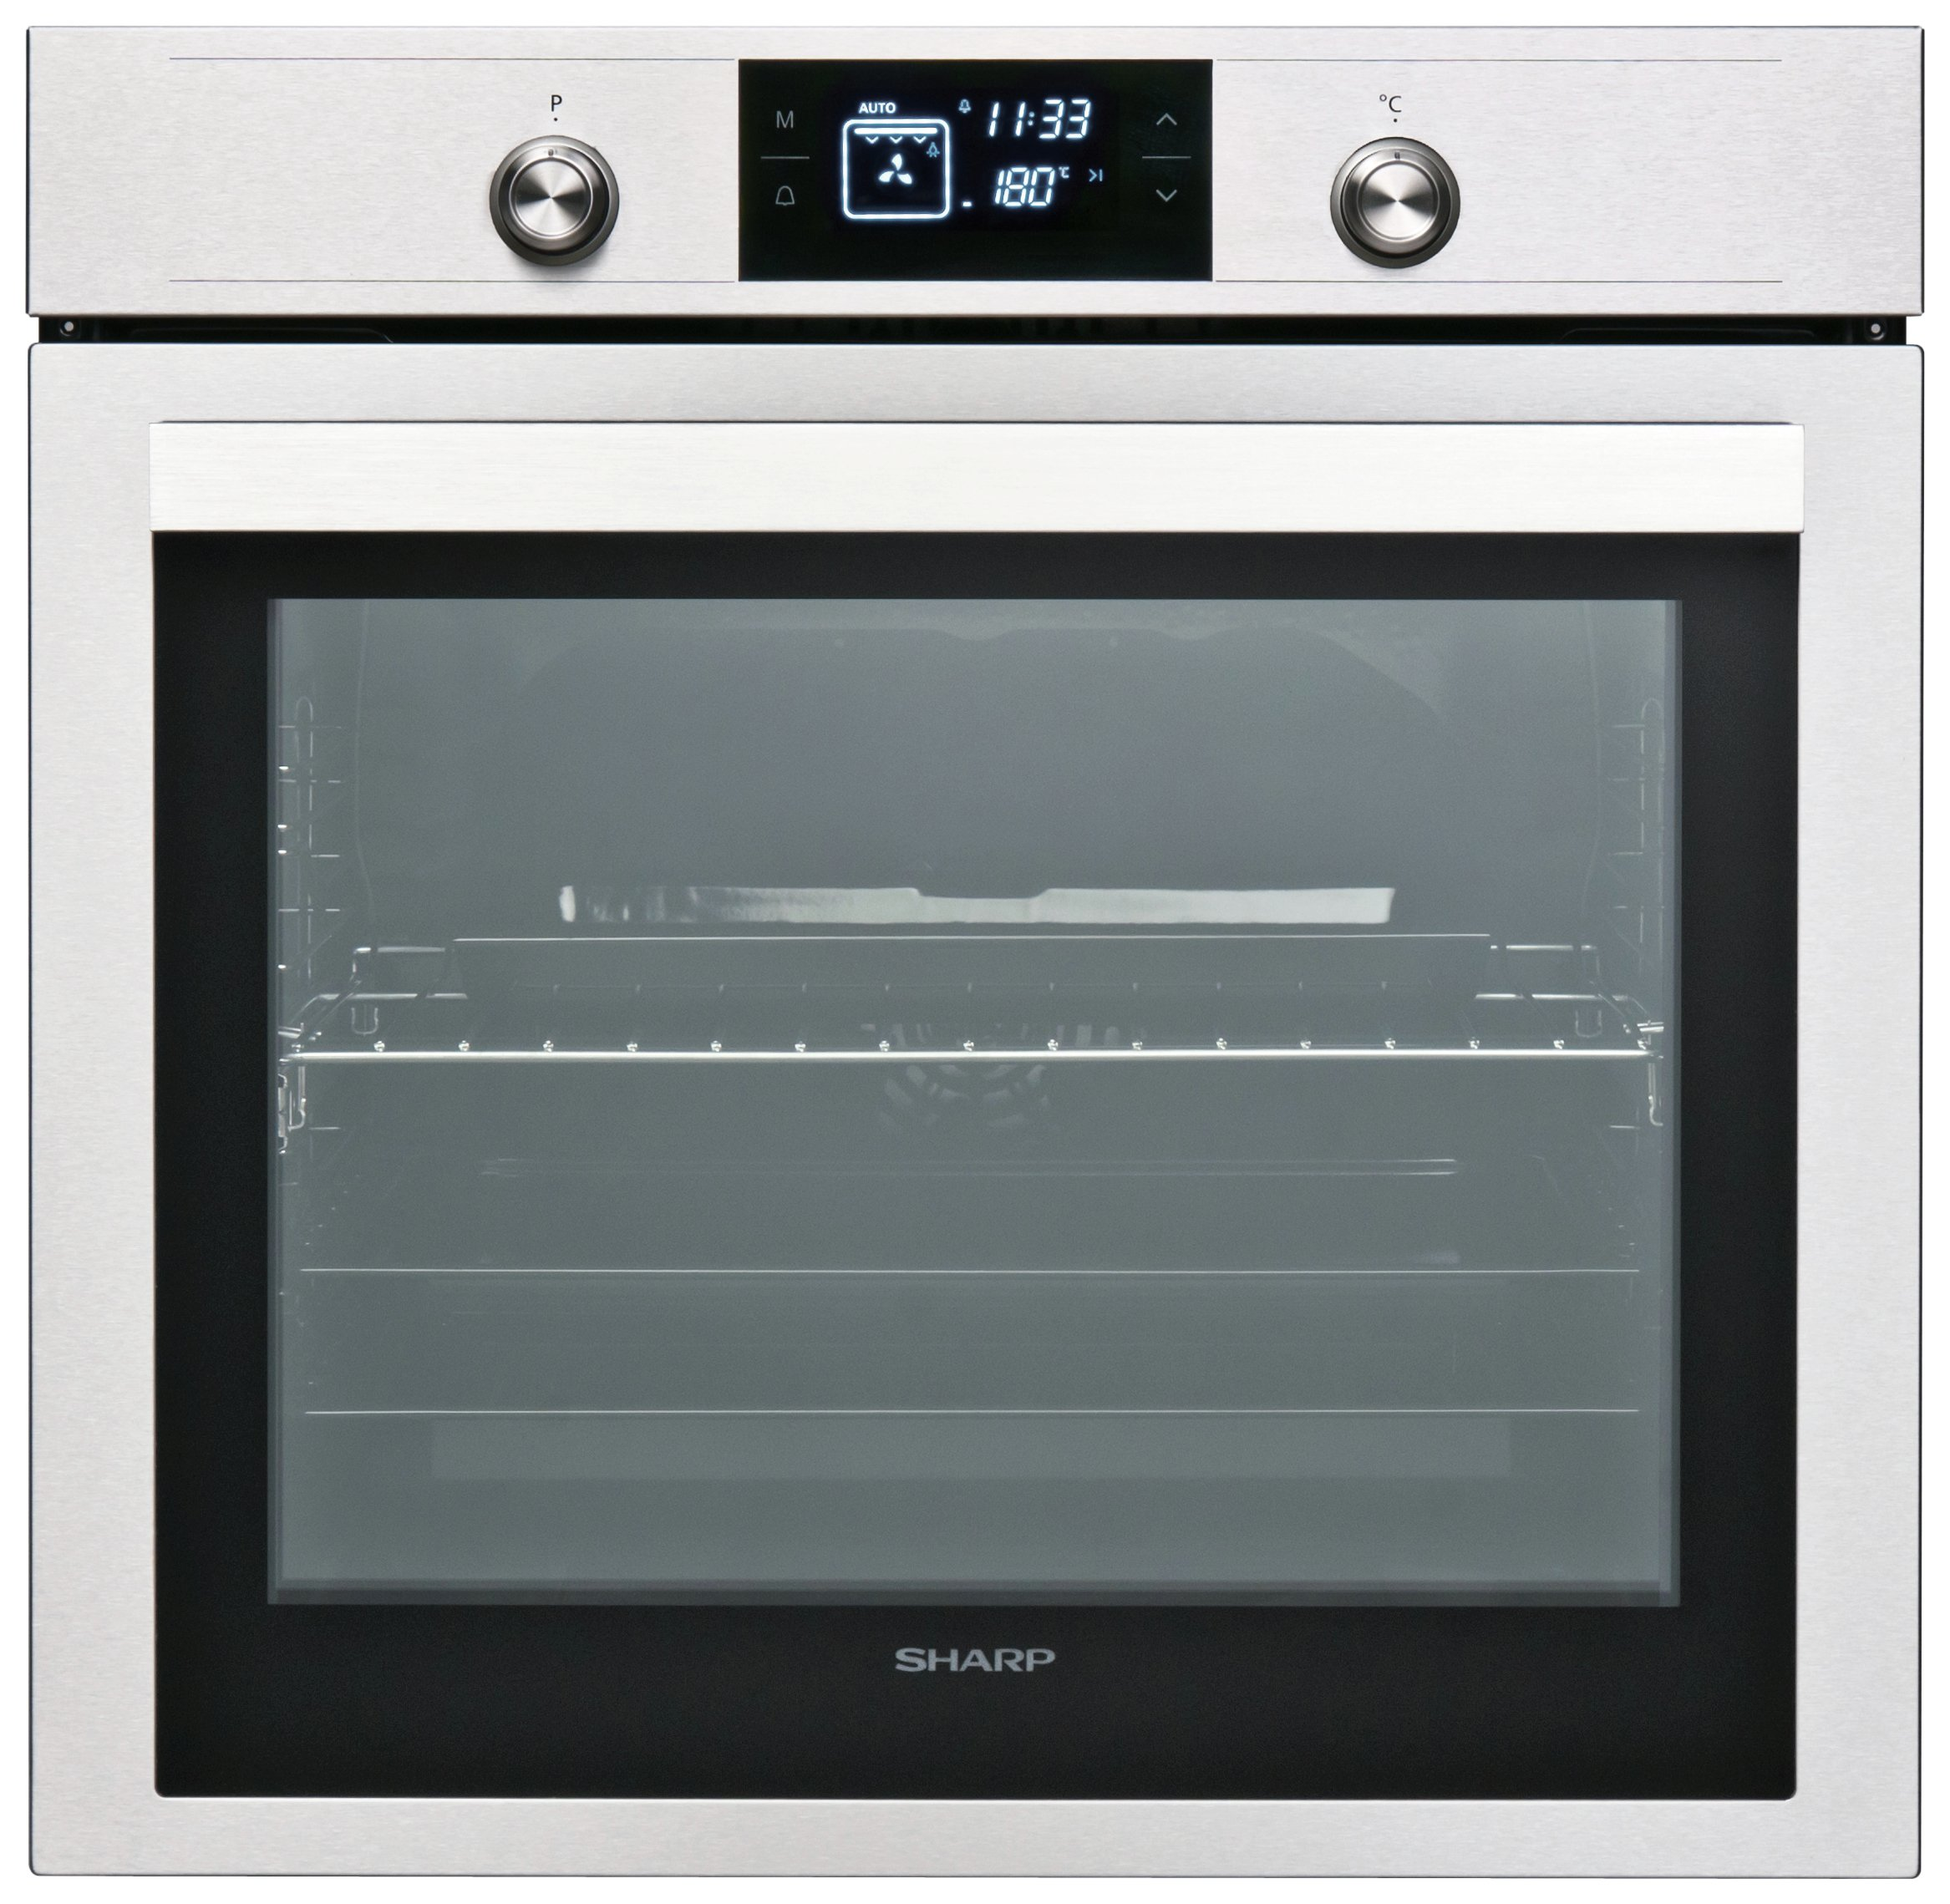 Sharp - K 70V19IM2 Multi Oven - Stainless Steel